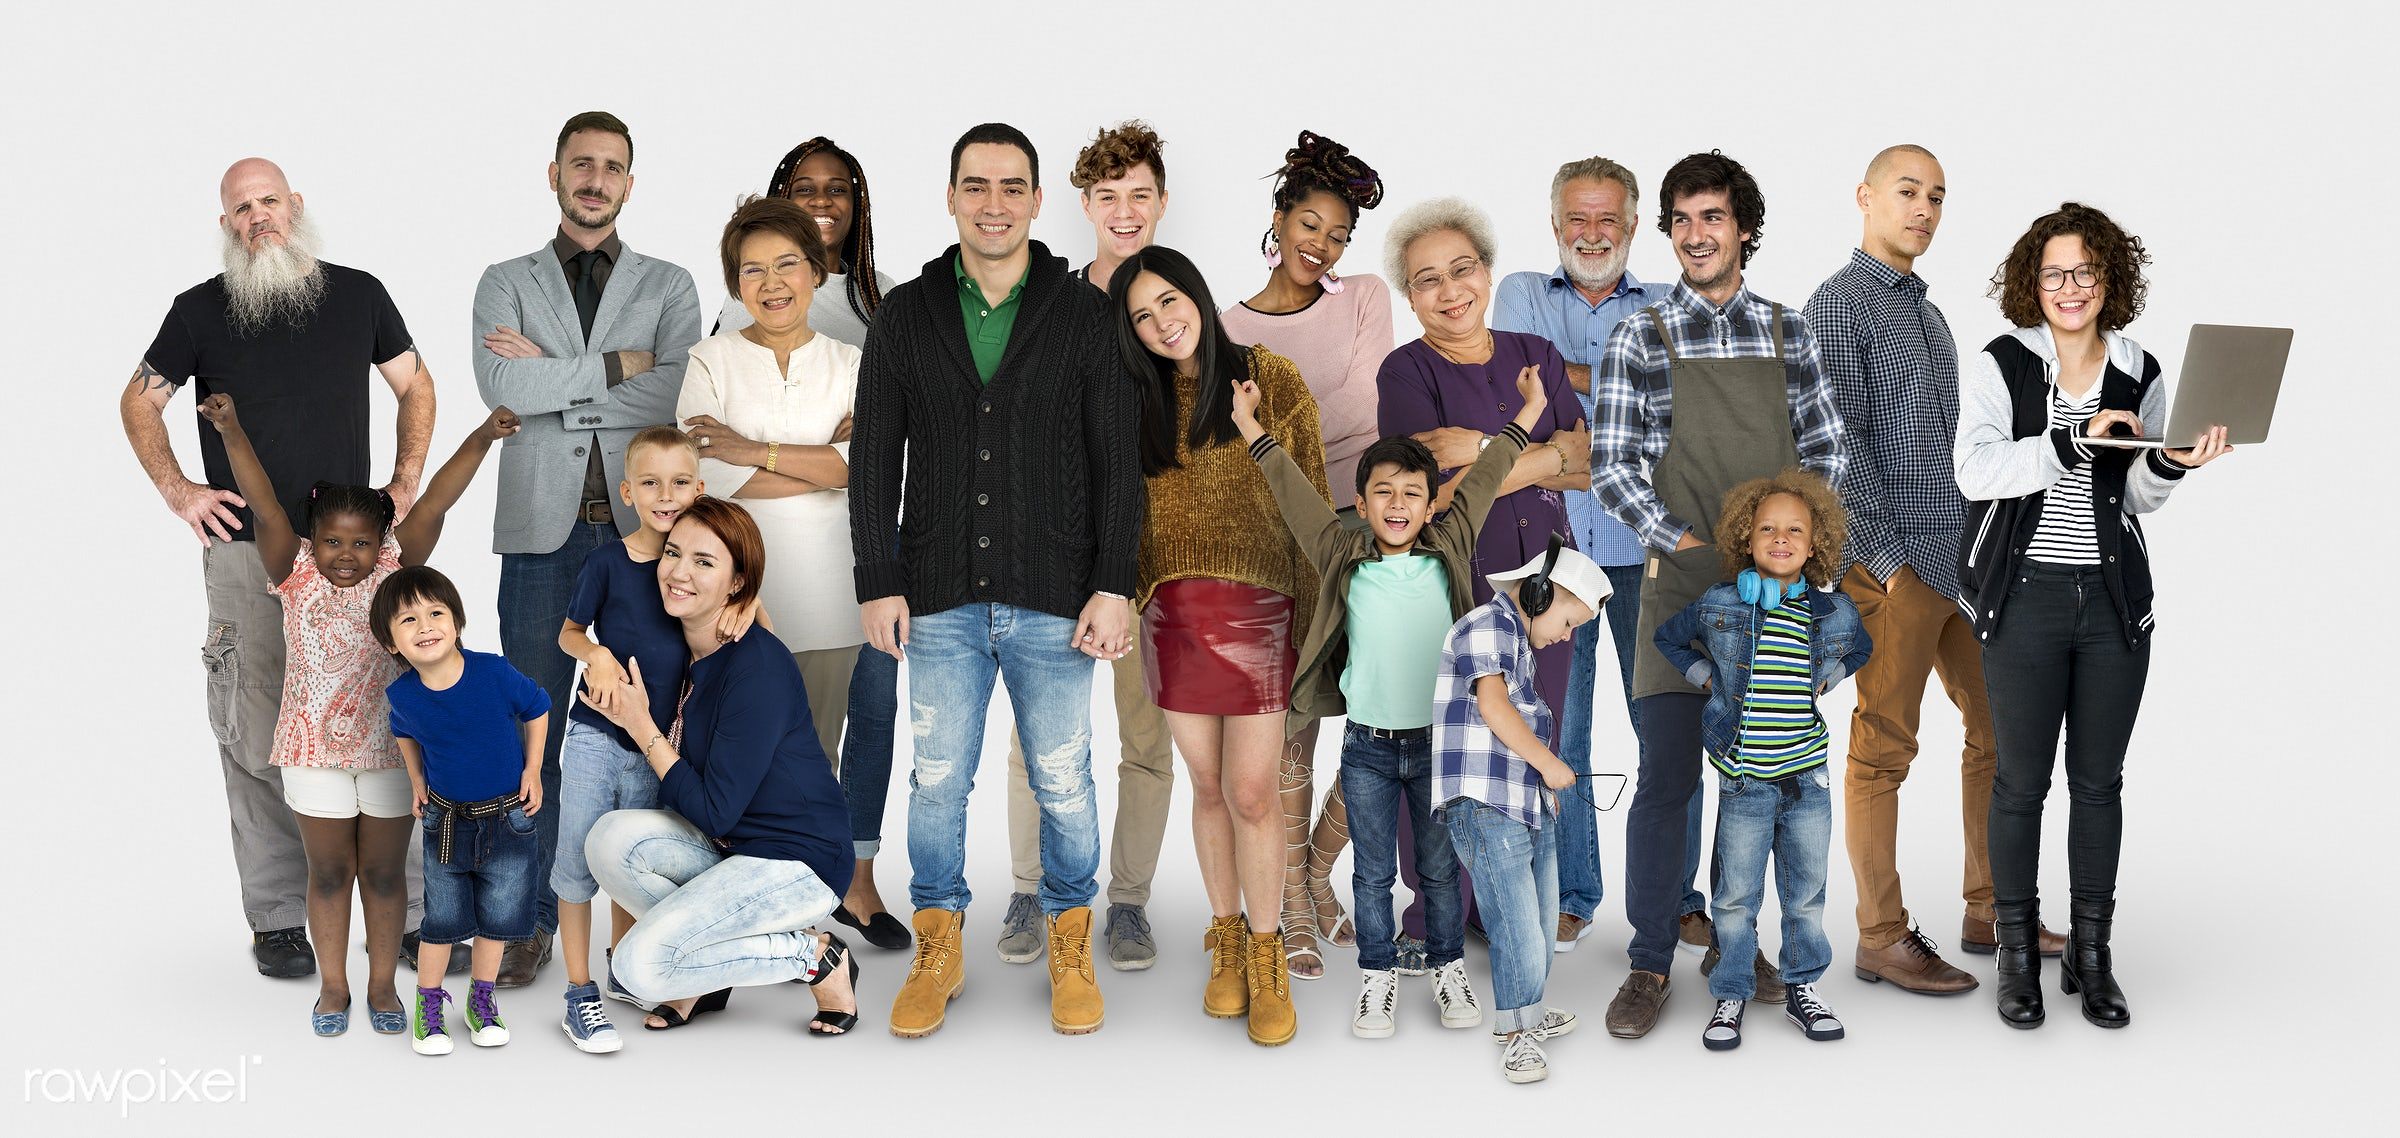 studio, person, diverse, people, together, asian, caucasian, kid, retirement, woman, lifestyle, studio squareset, cheerful,...